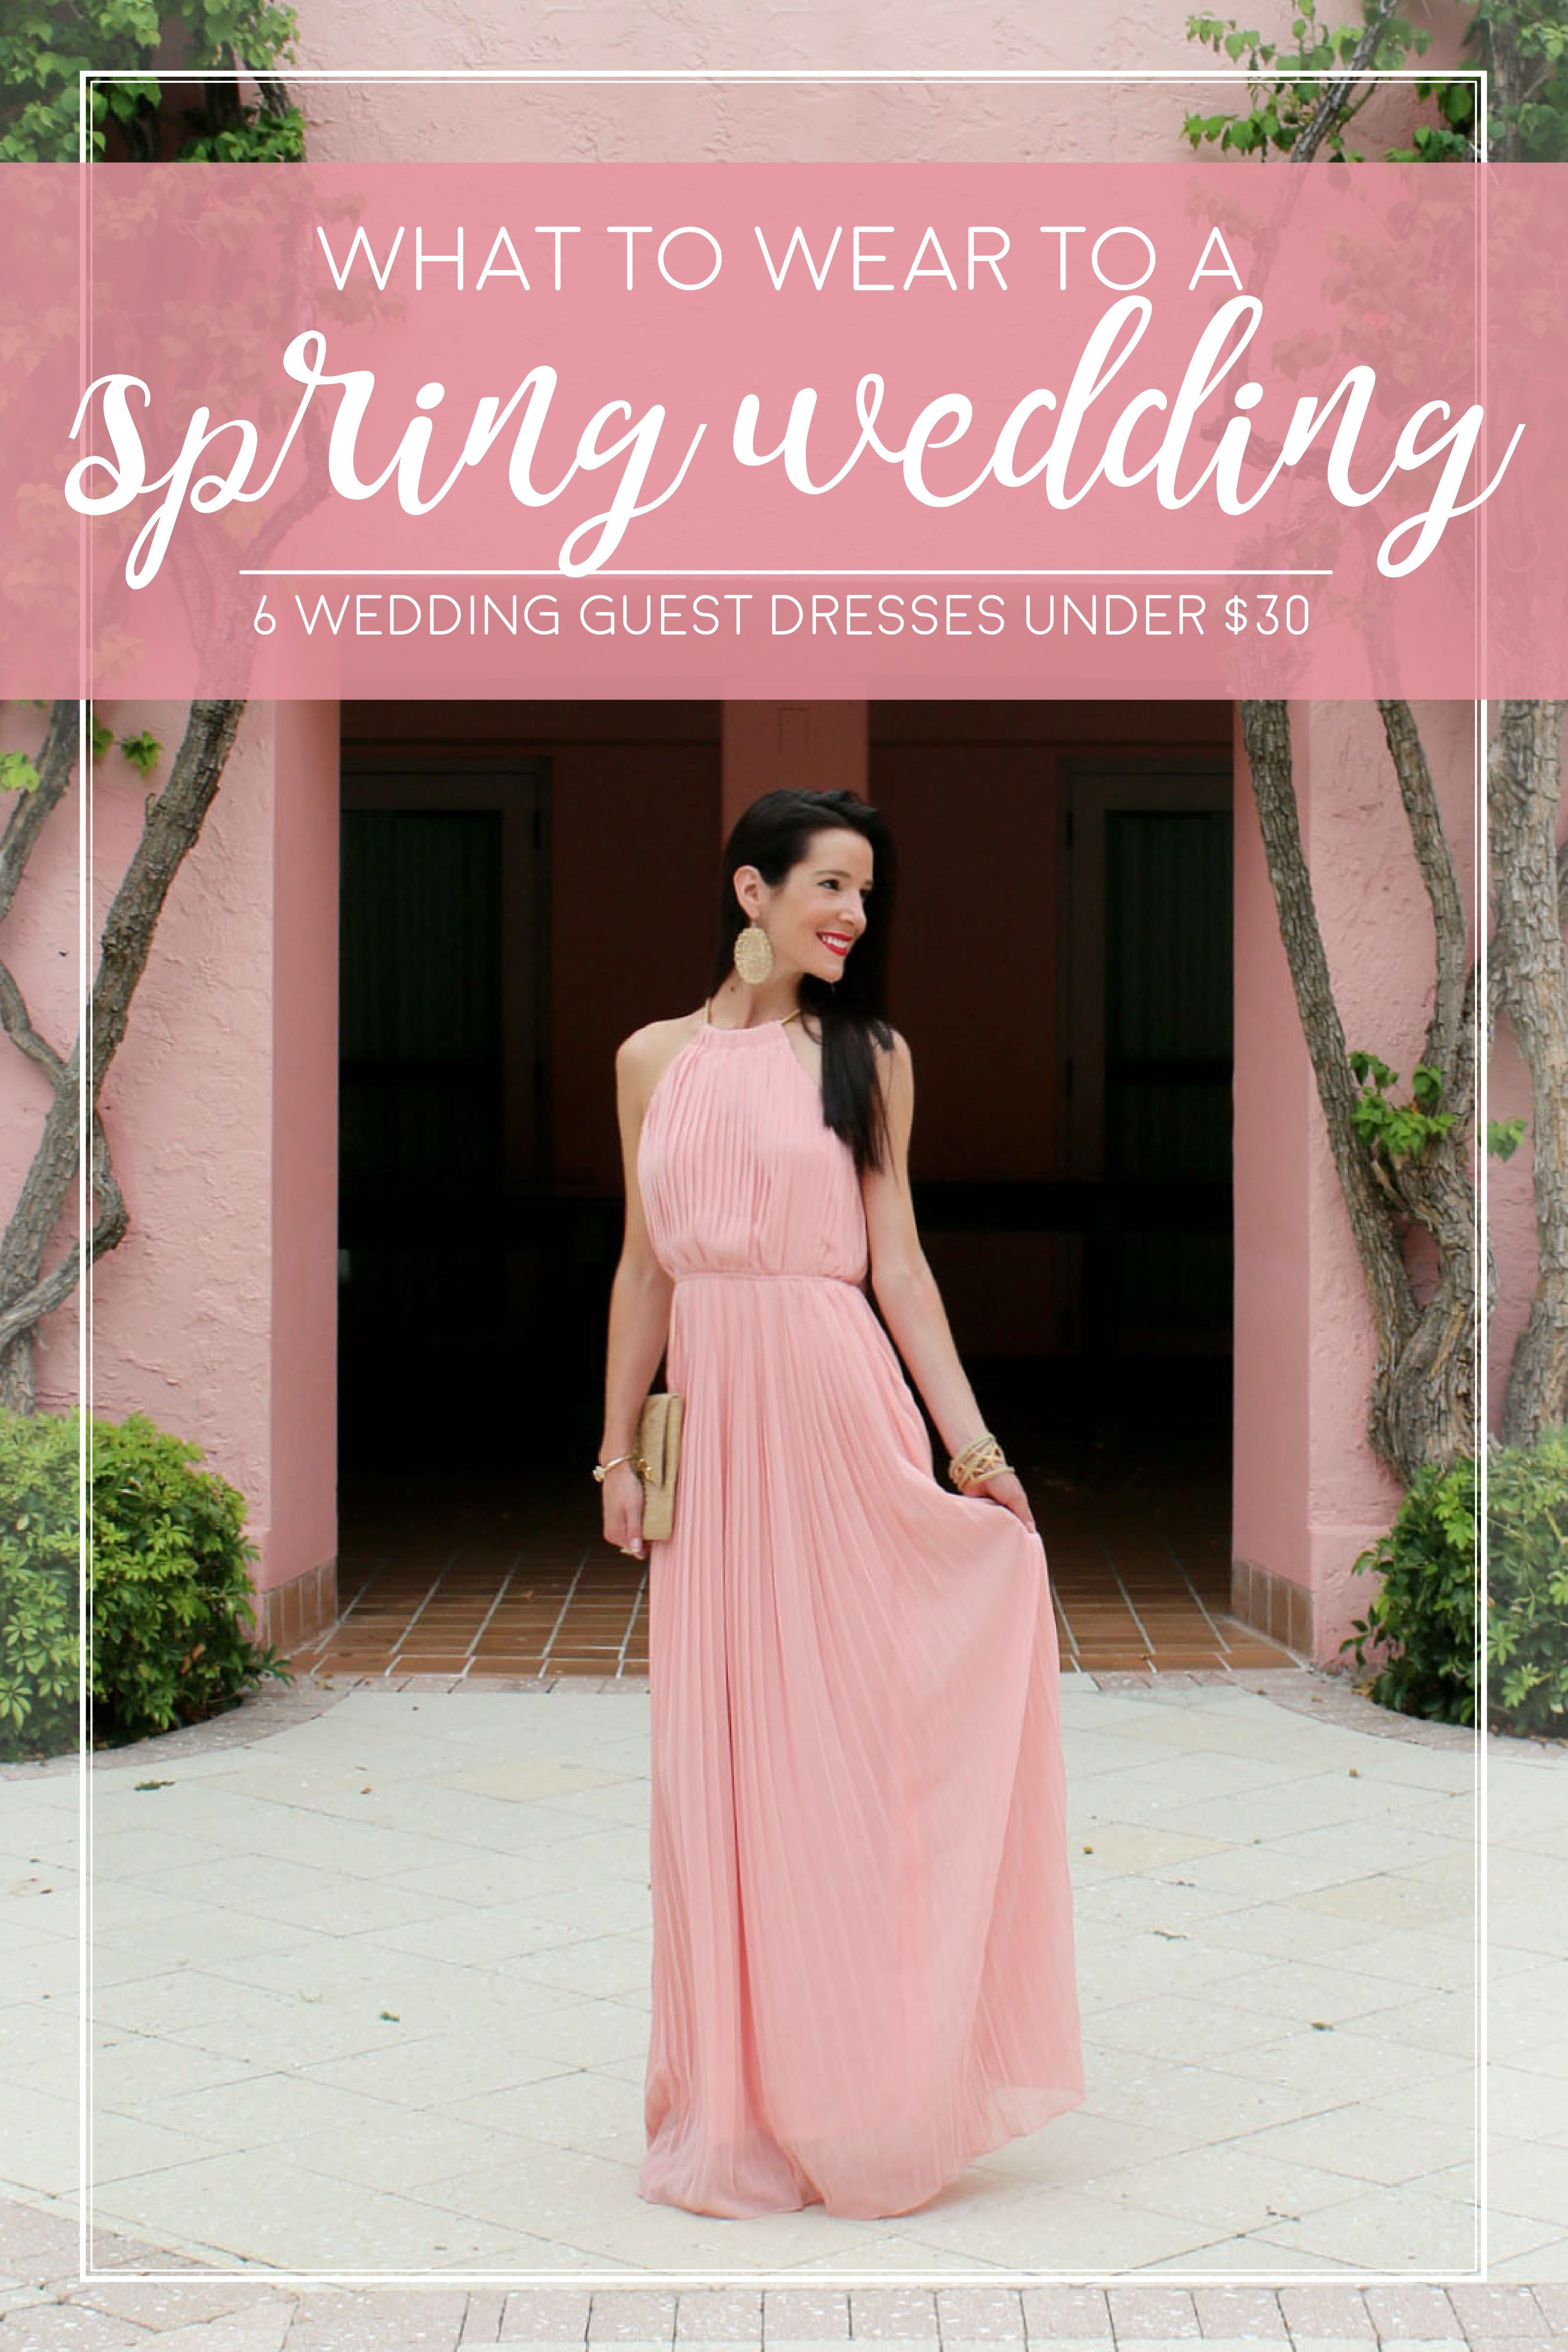 Best dresses to wear to a spring wedding  Best Dresses to Wear to a Spring Wedding